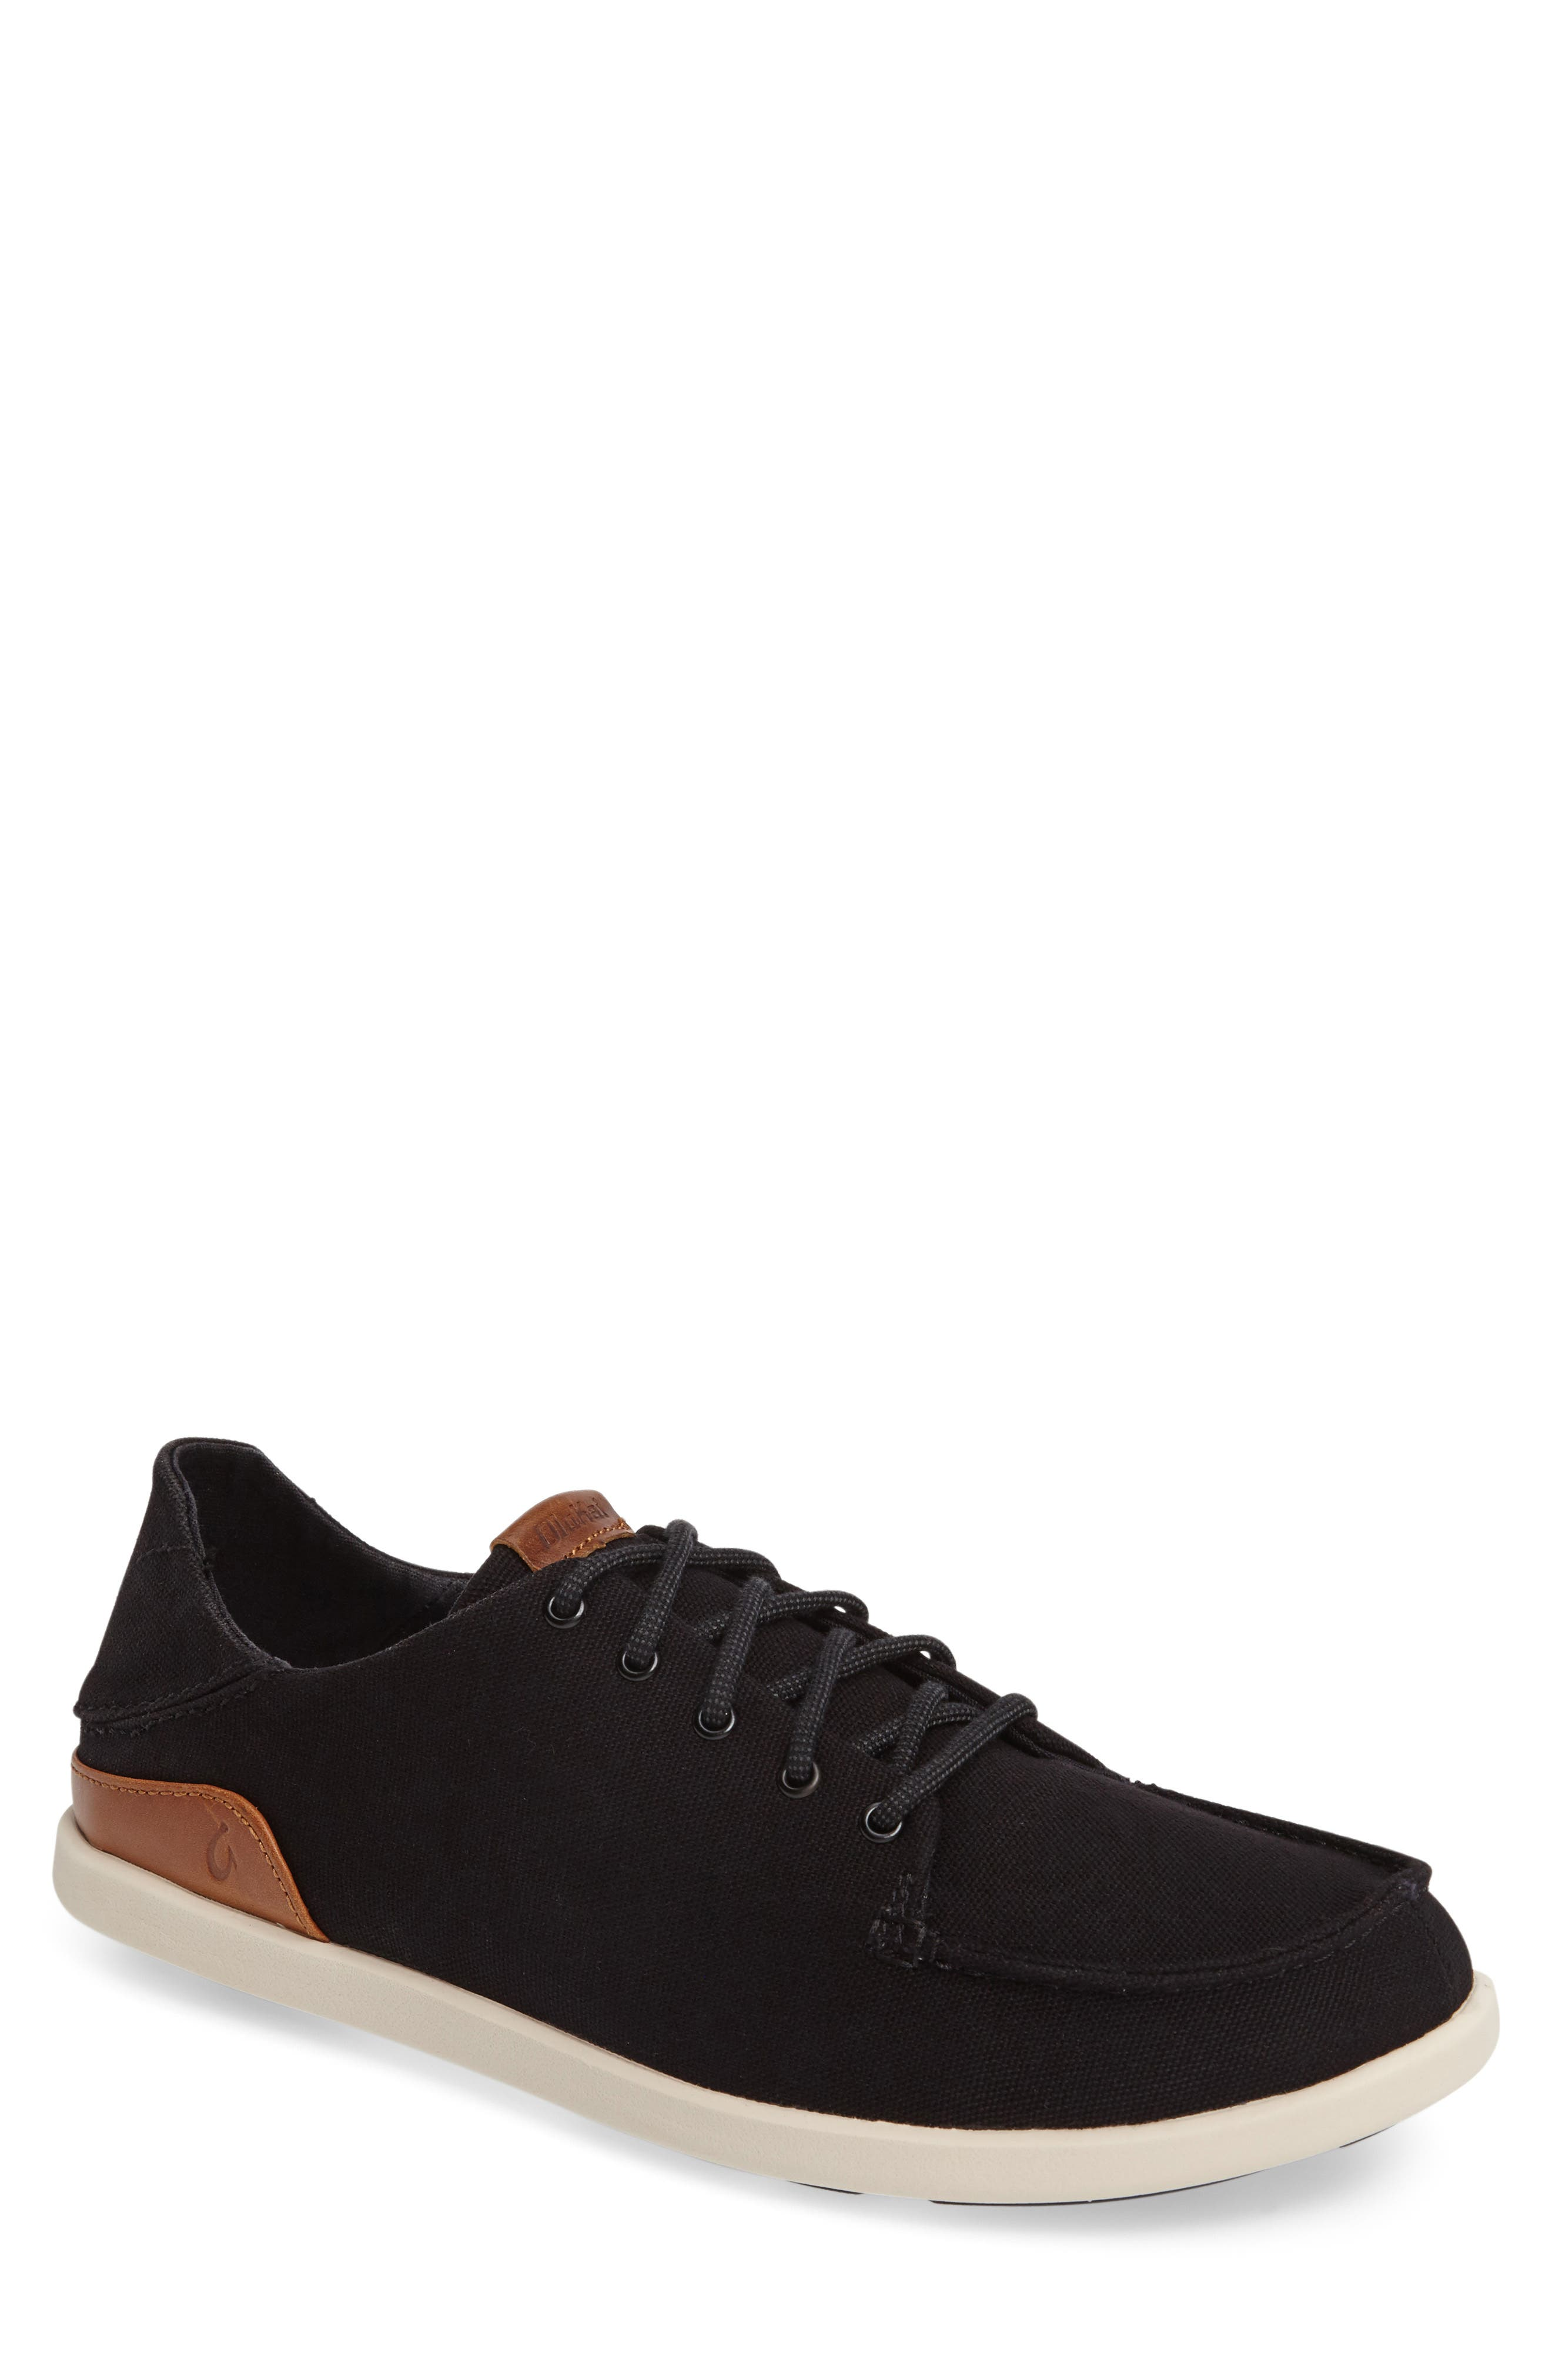 Manoa Sneaker,                         Main,                         color, BLACK/ MUSTARD